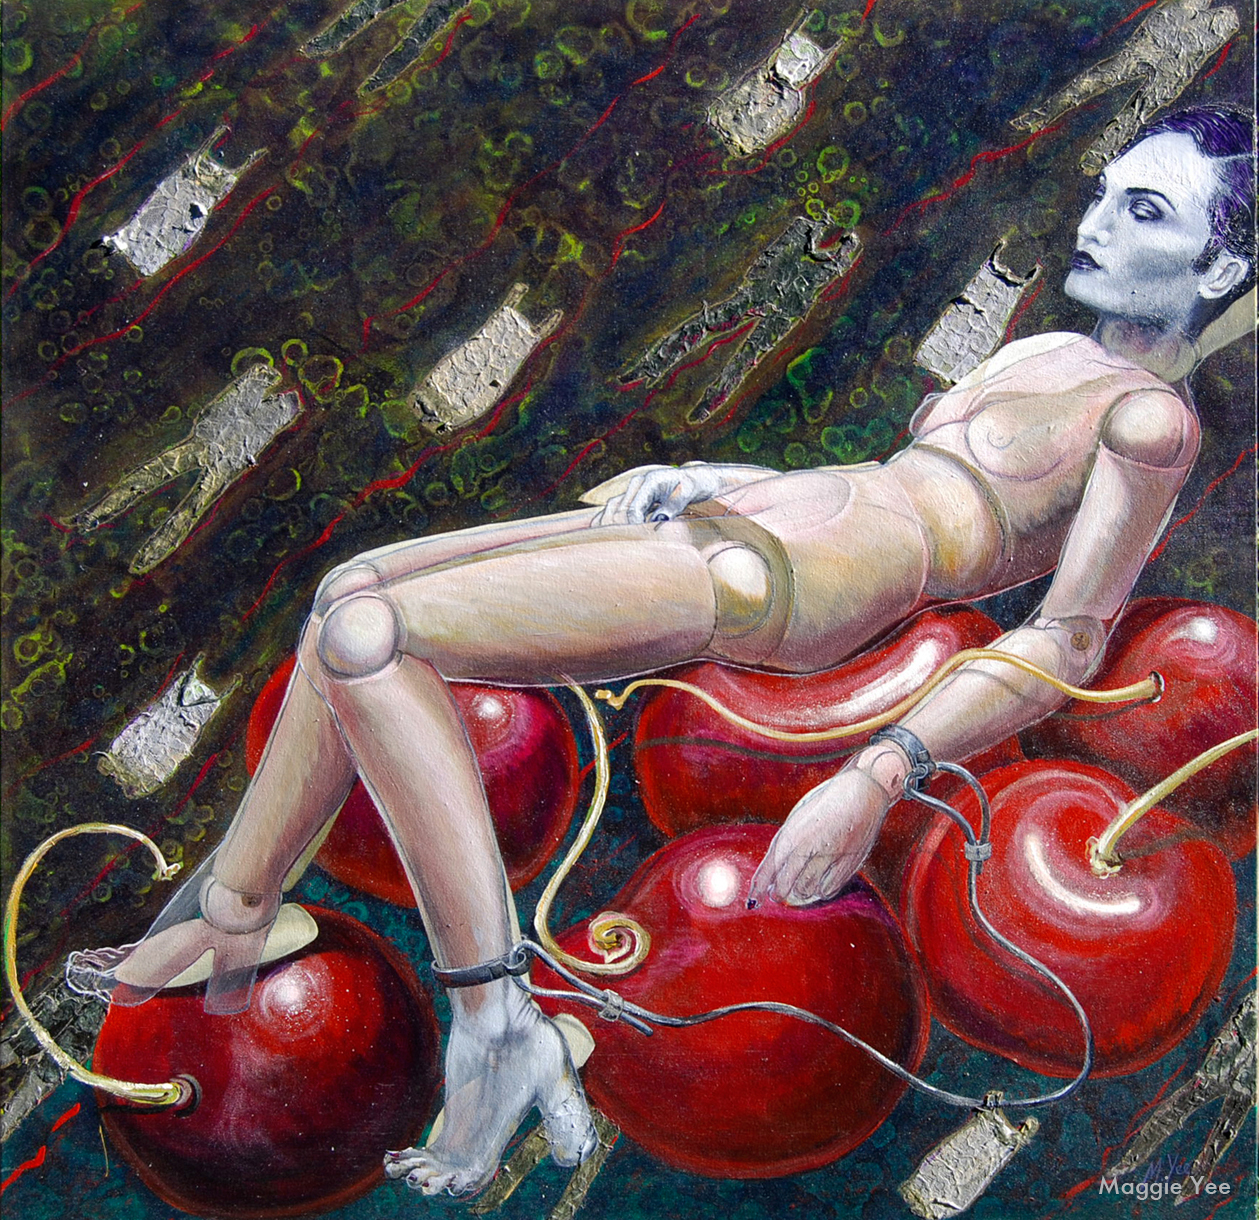 The Virgin Rest on Her Bruised Cherries Pondering Fashion